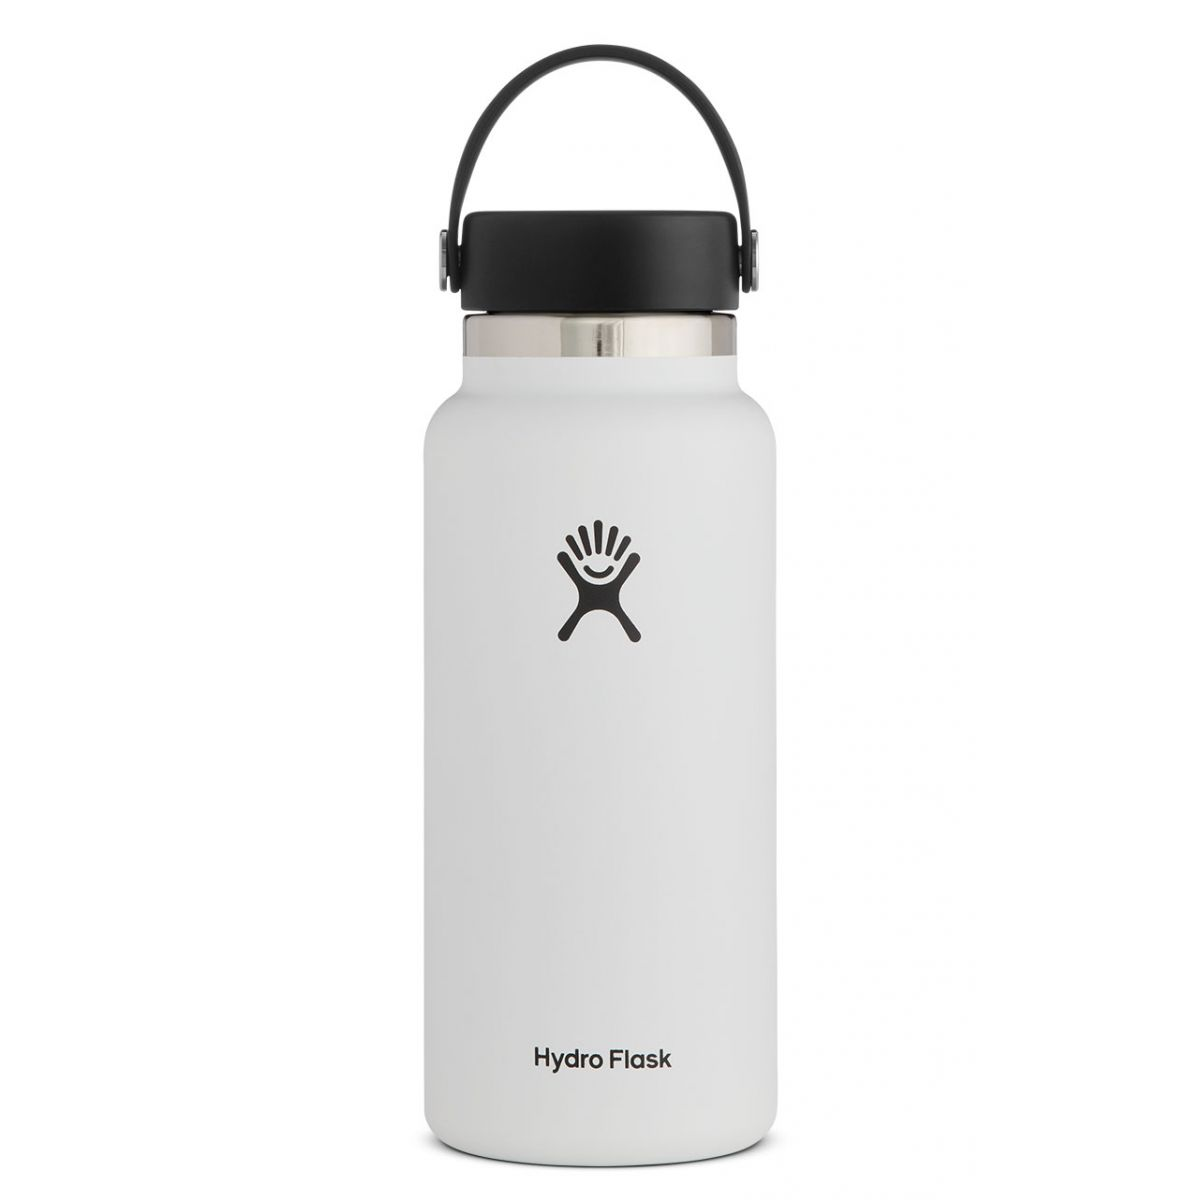 Image For Hydroflask Insulated Wide Mouth Water Bottle, White